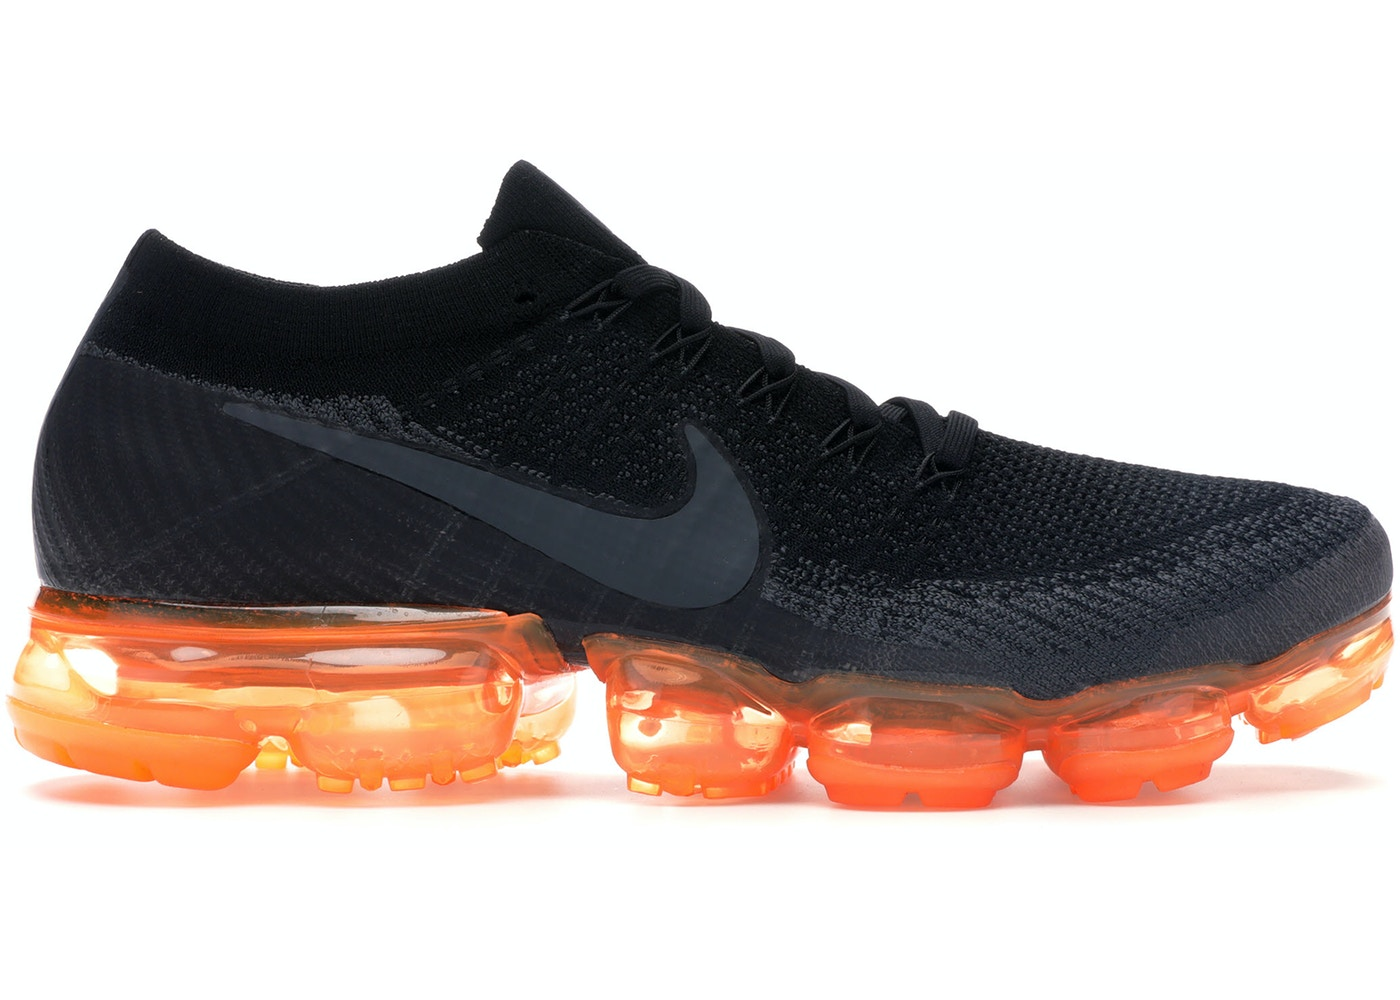 8cb57b3a22e90 Air VaporMax Black Orange - AH8449-001